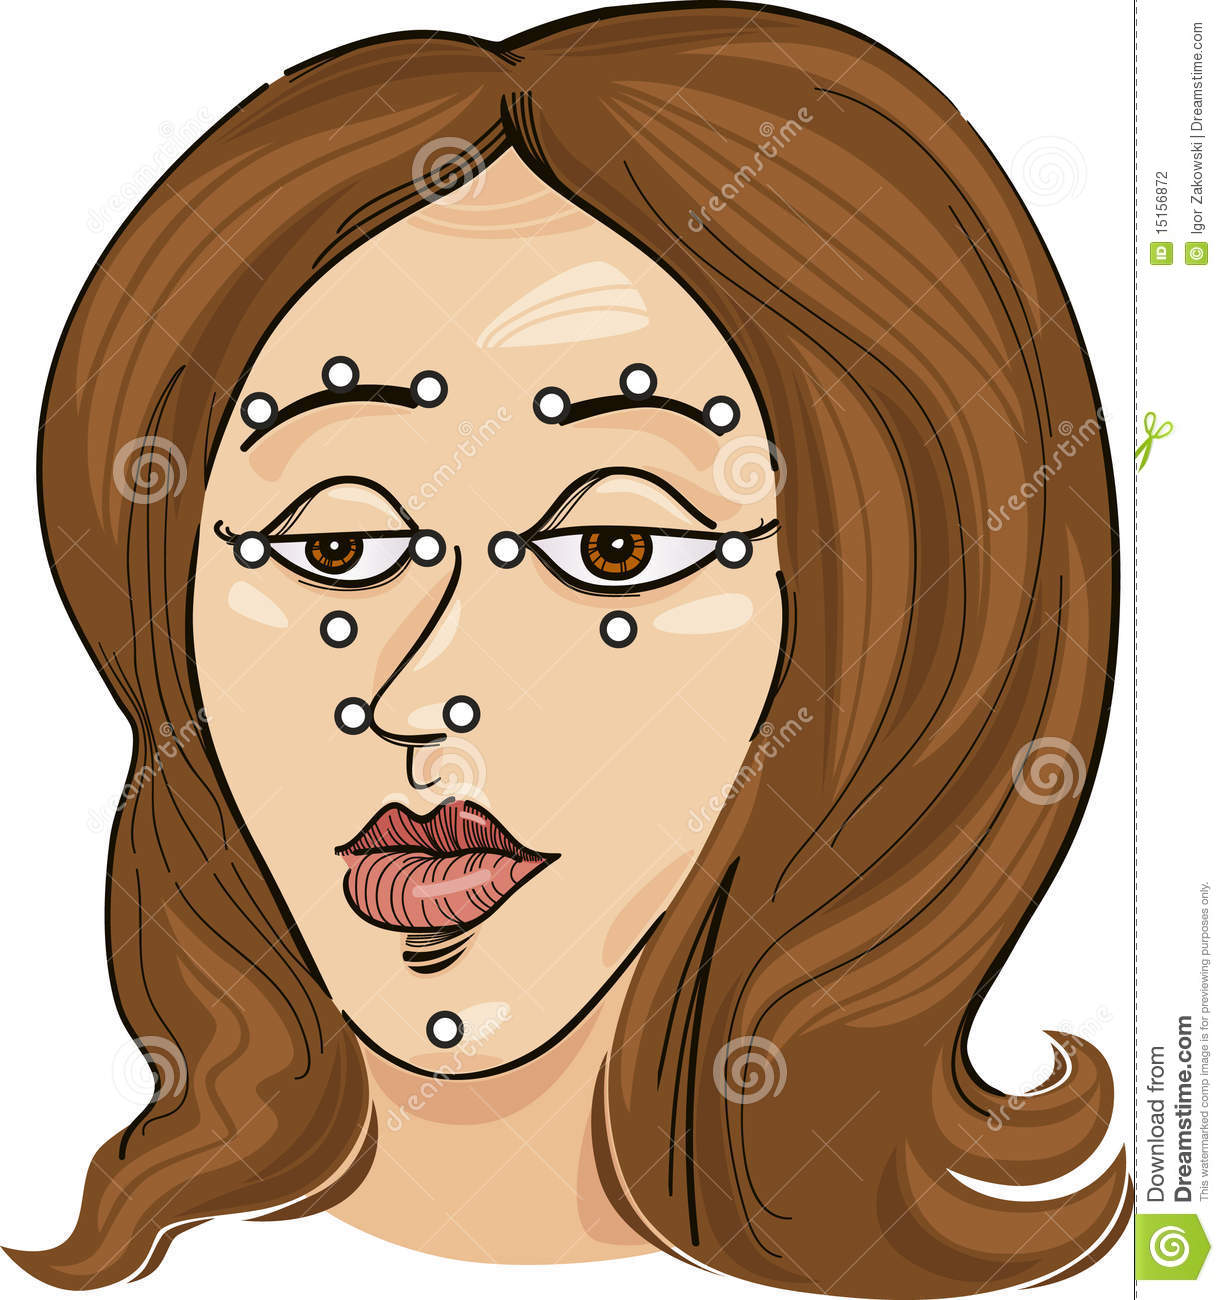 face pressure points diagram 220 volt wiring acupressure on stock photography image 15156872